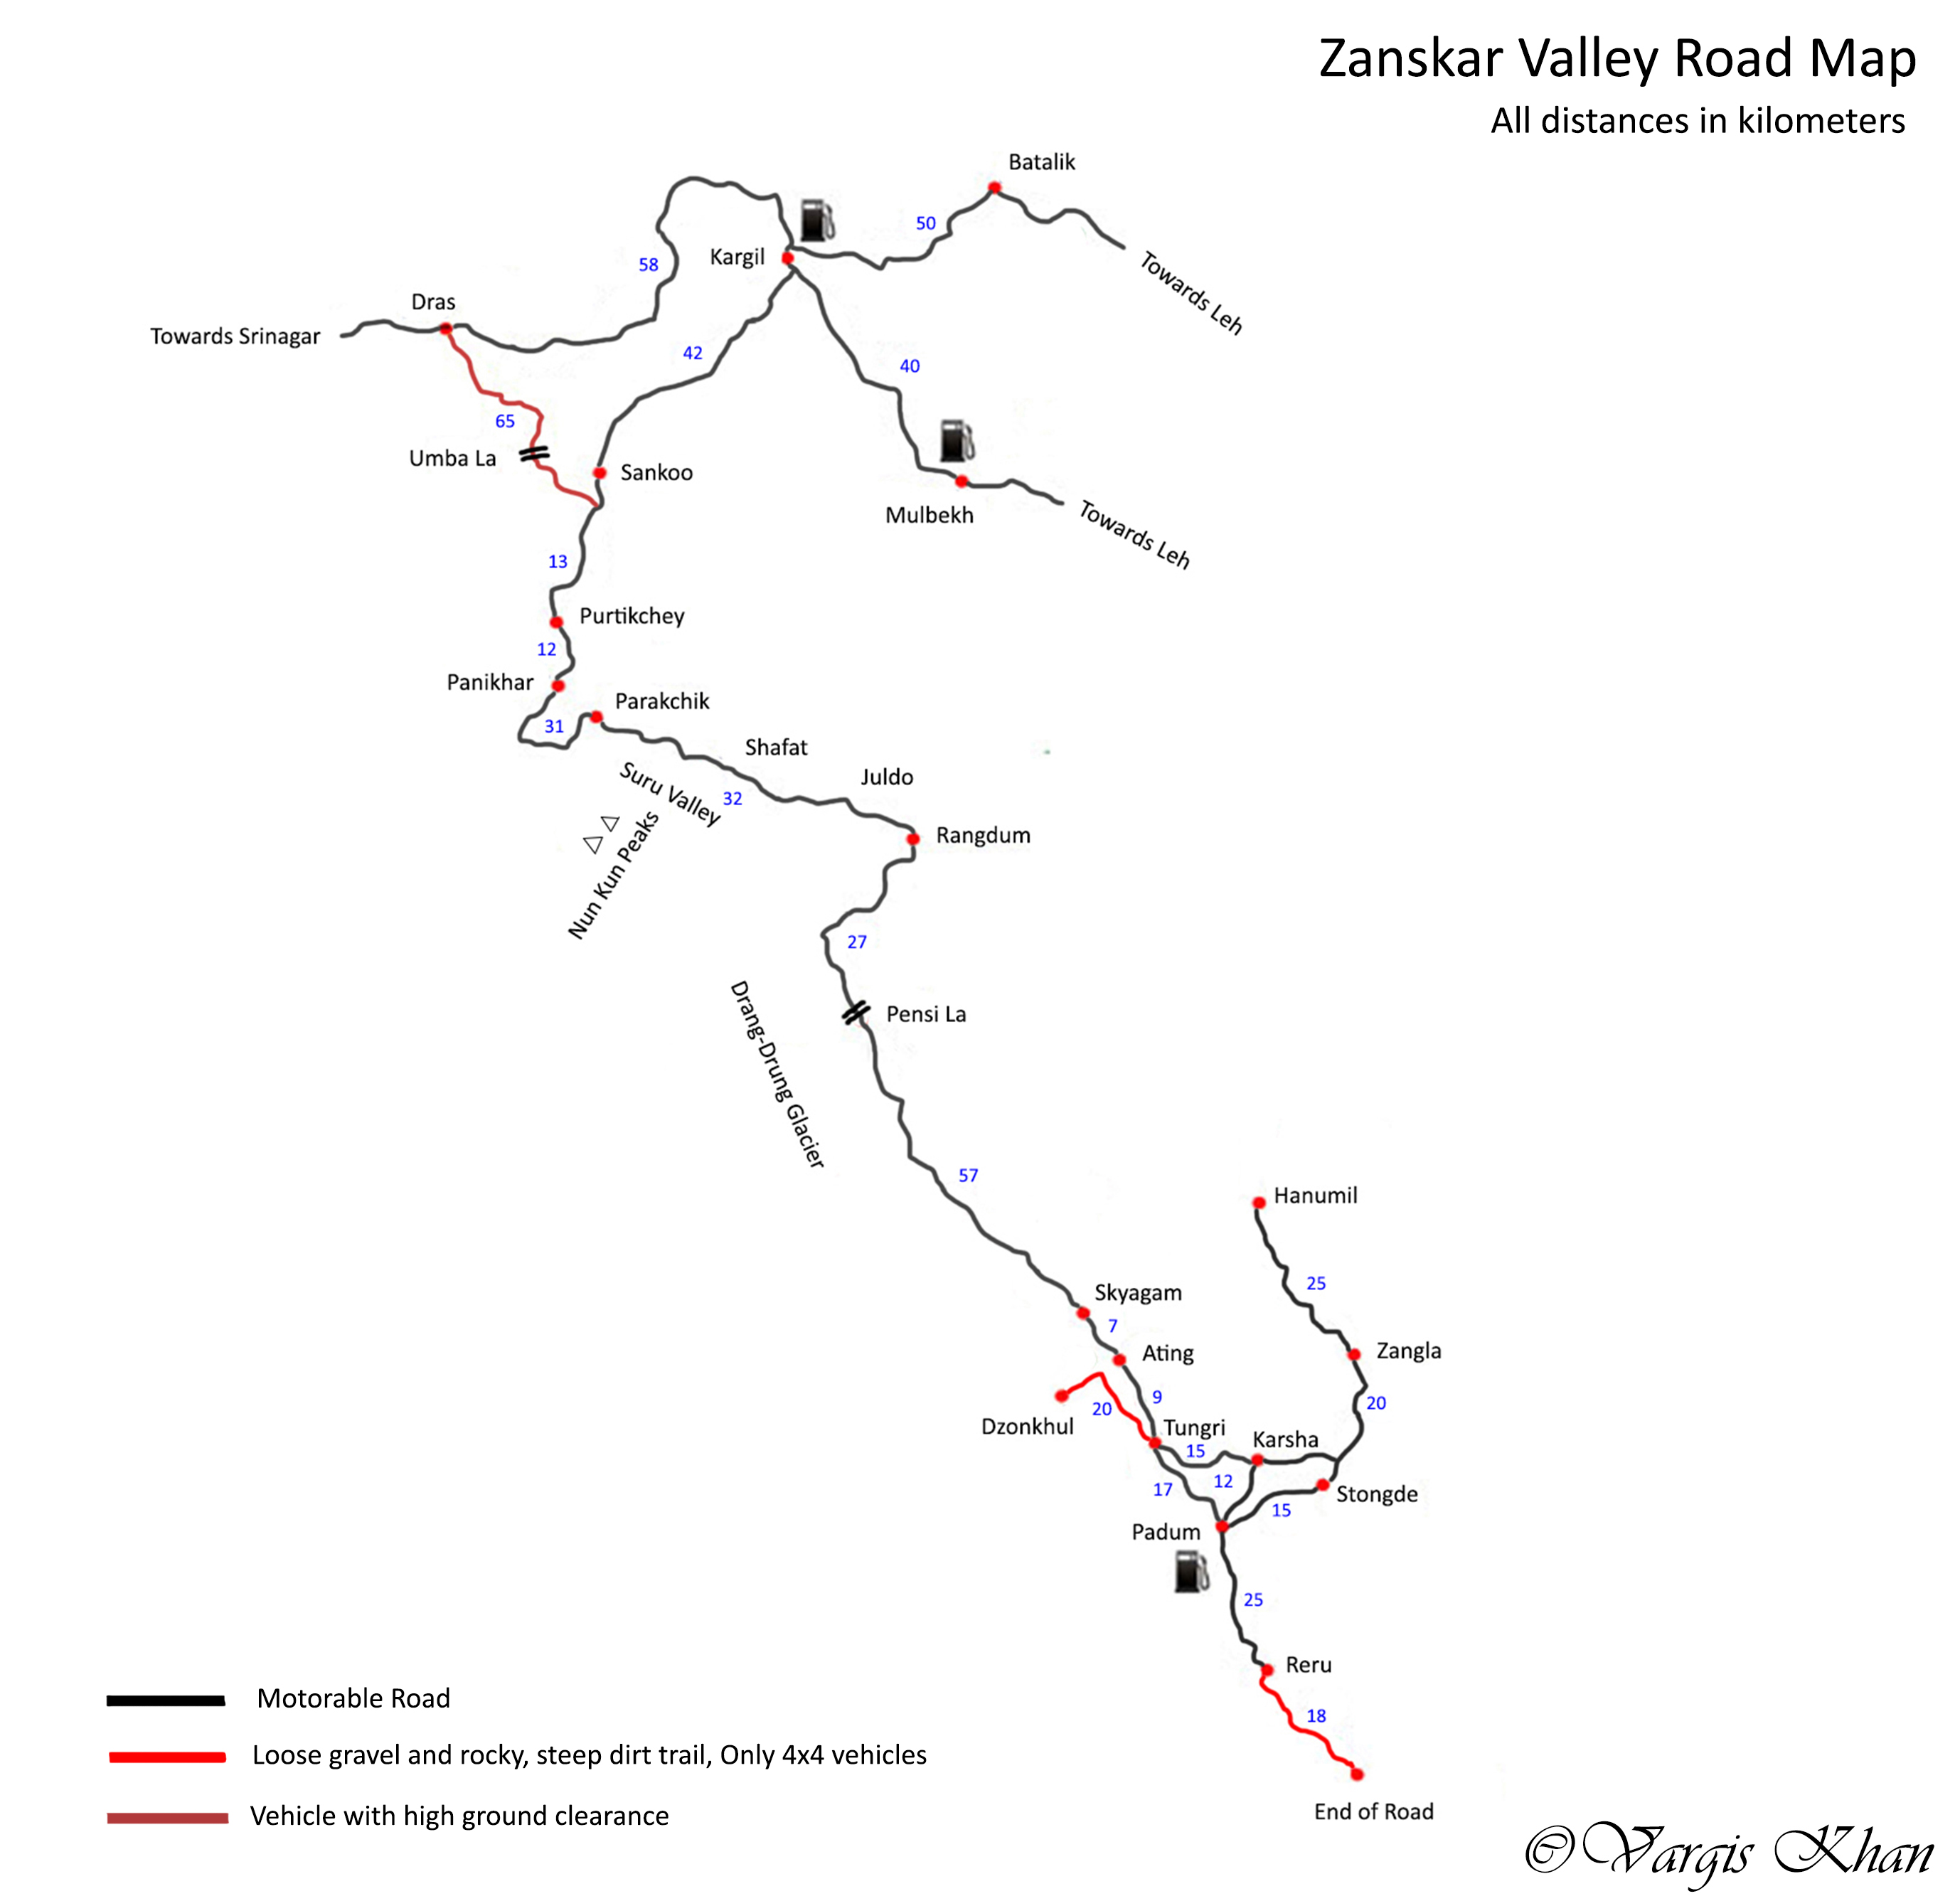 zanskar valley road map